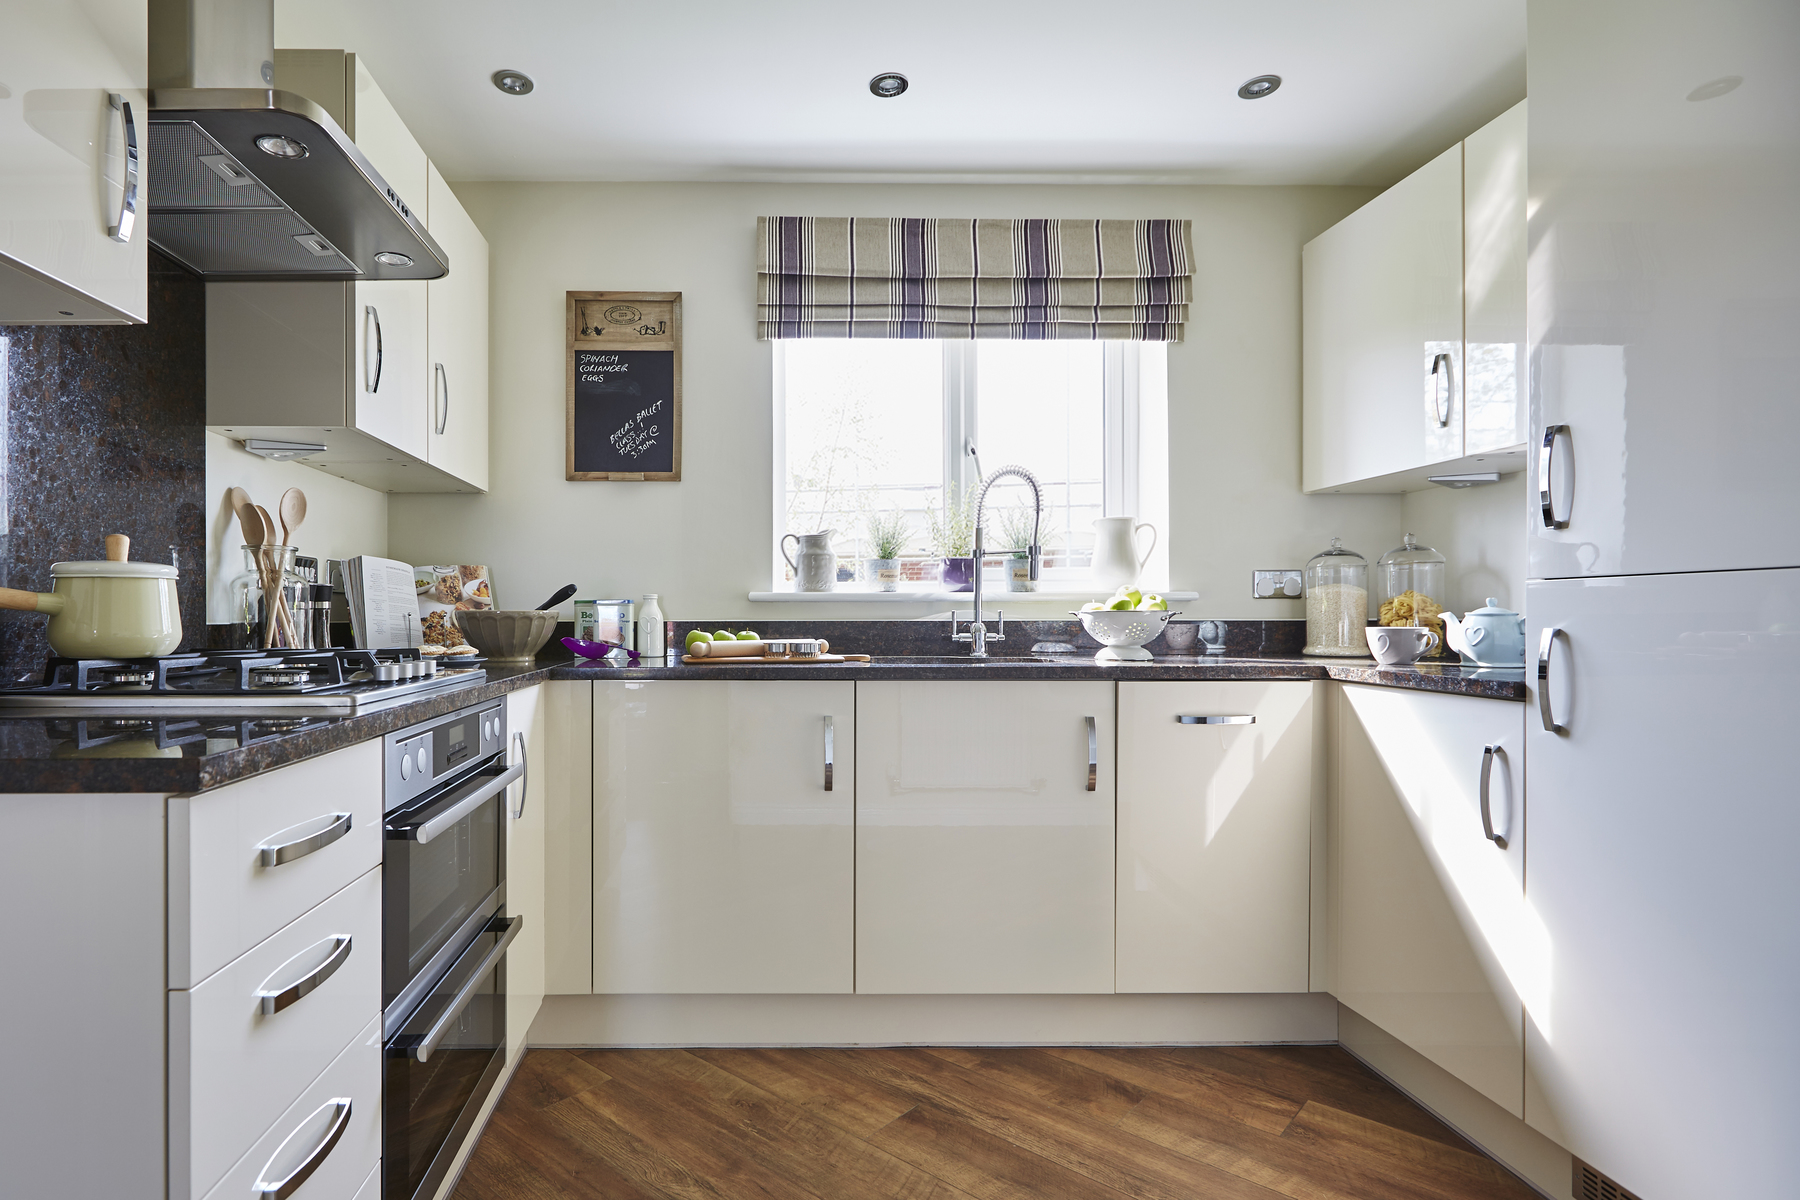 tw_man_albion_lock_sandbach_pd32_aldenham_kitchen_2